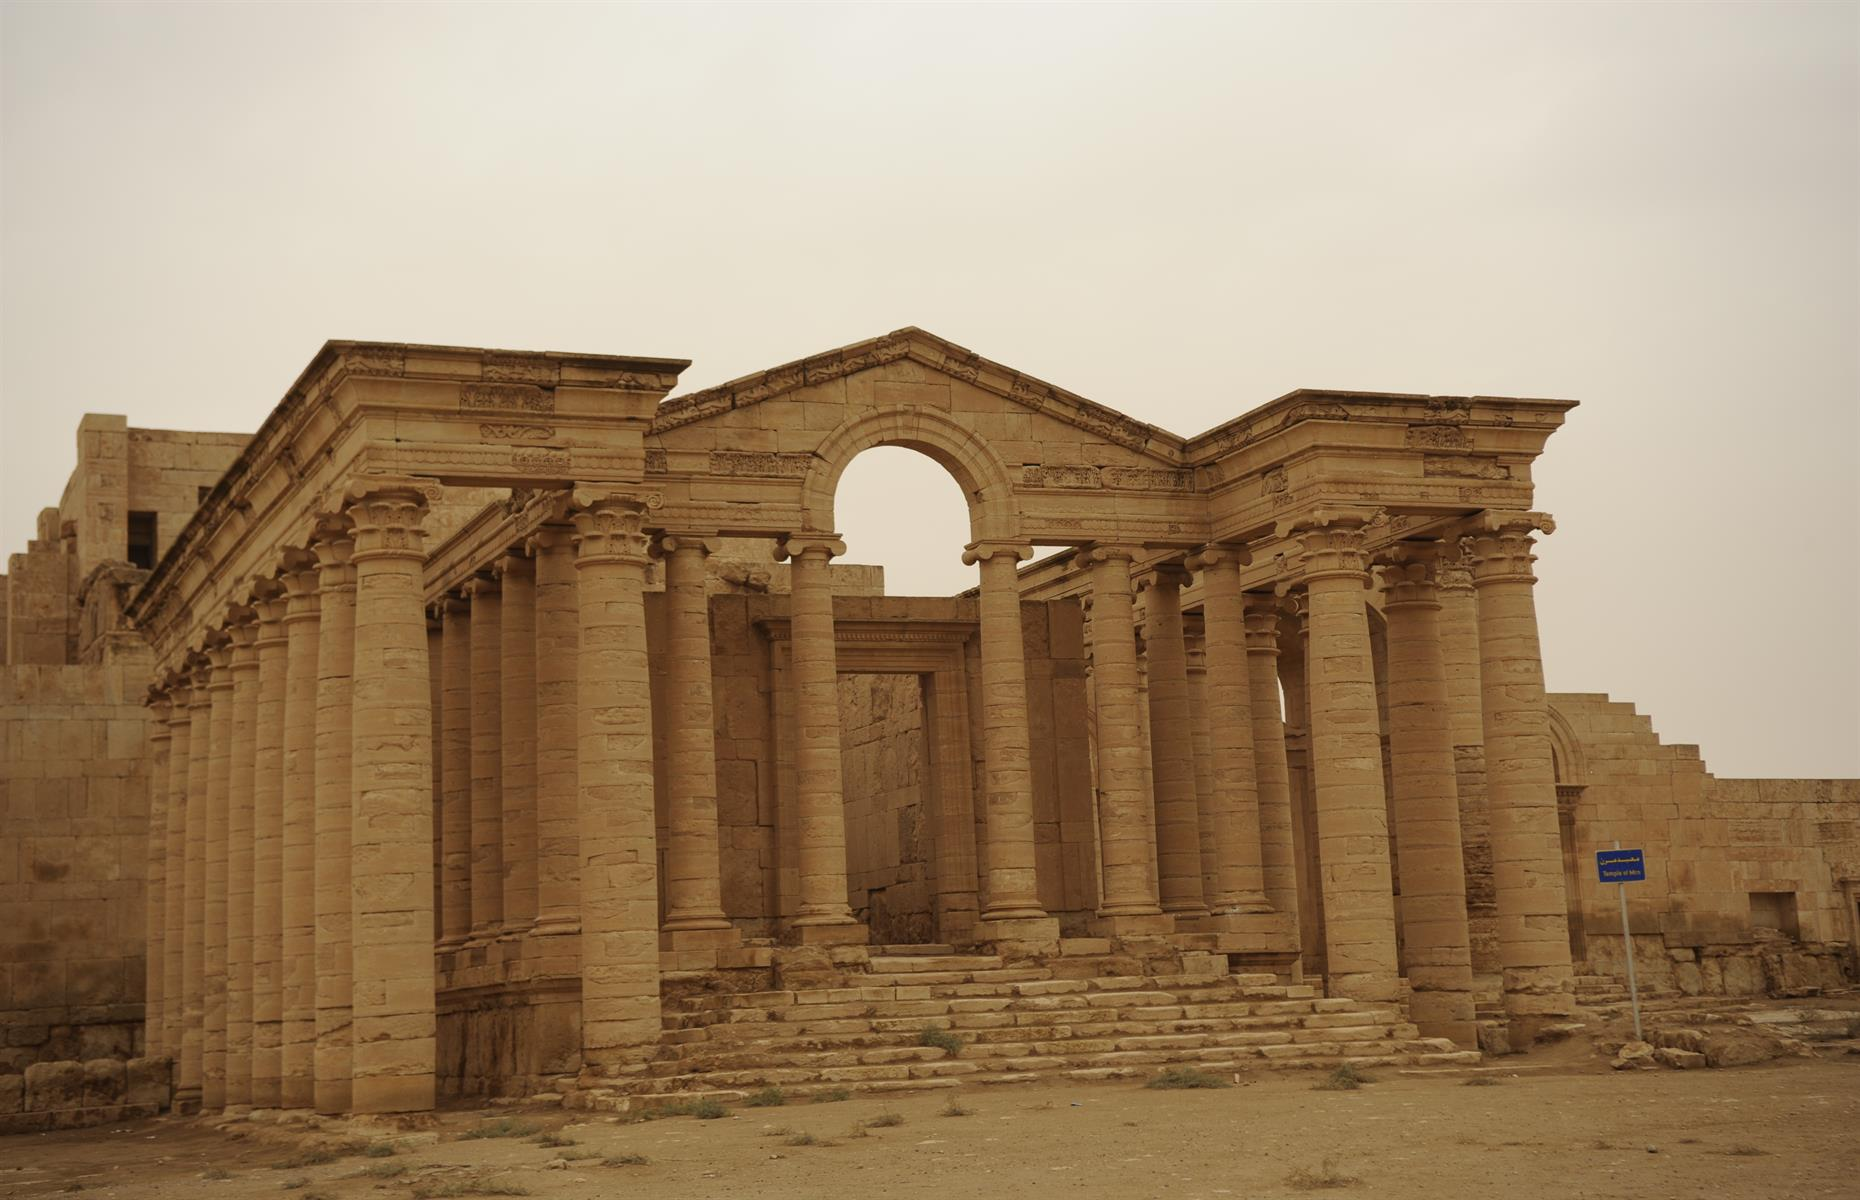 Slide 17 of 53: The fortress city of Hatra, which dates back to days of the Parthian empire in the 3rd or 2nd century BC, was the capital of the first Arab Kingdom. Known for its mighty walls and towers, which helped it withstand two Roman invasions in the 2nd century AD, its architecture represents a unique blend of Hellenistic and Roman styles with eastern decorative features. It was taken by Isis in 2015, who used sledgehammers and guns to destroy carvings and statues. It is undergoing a lengthy restoration process.